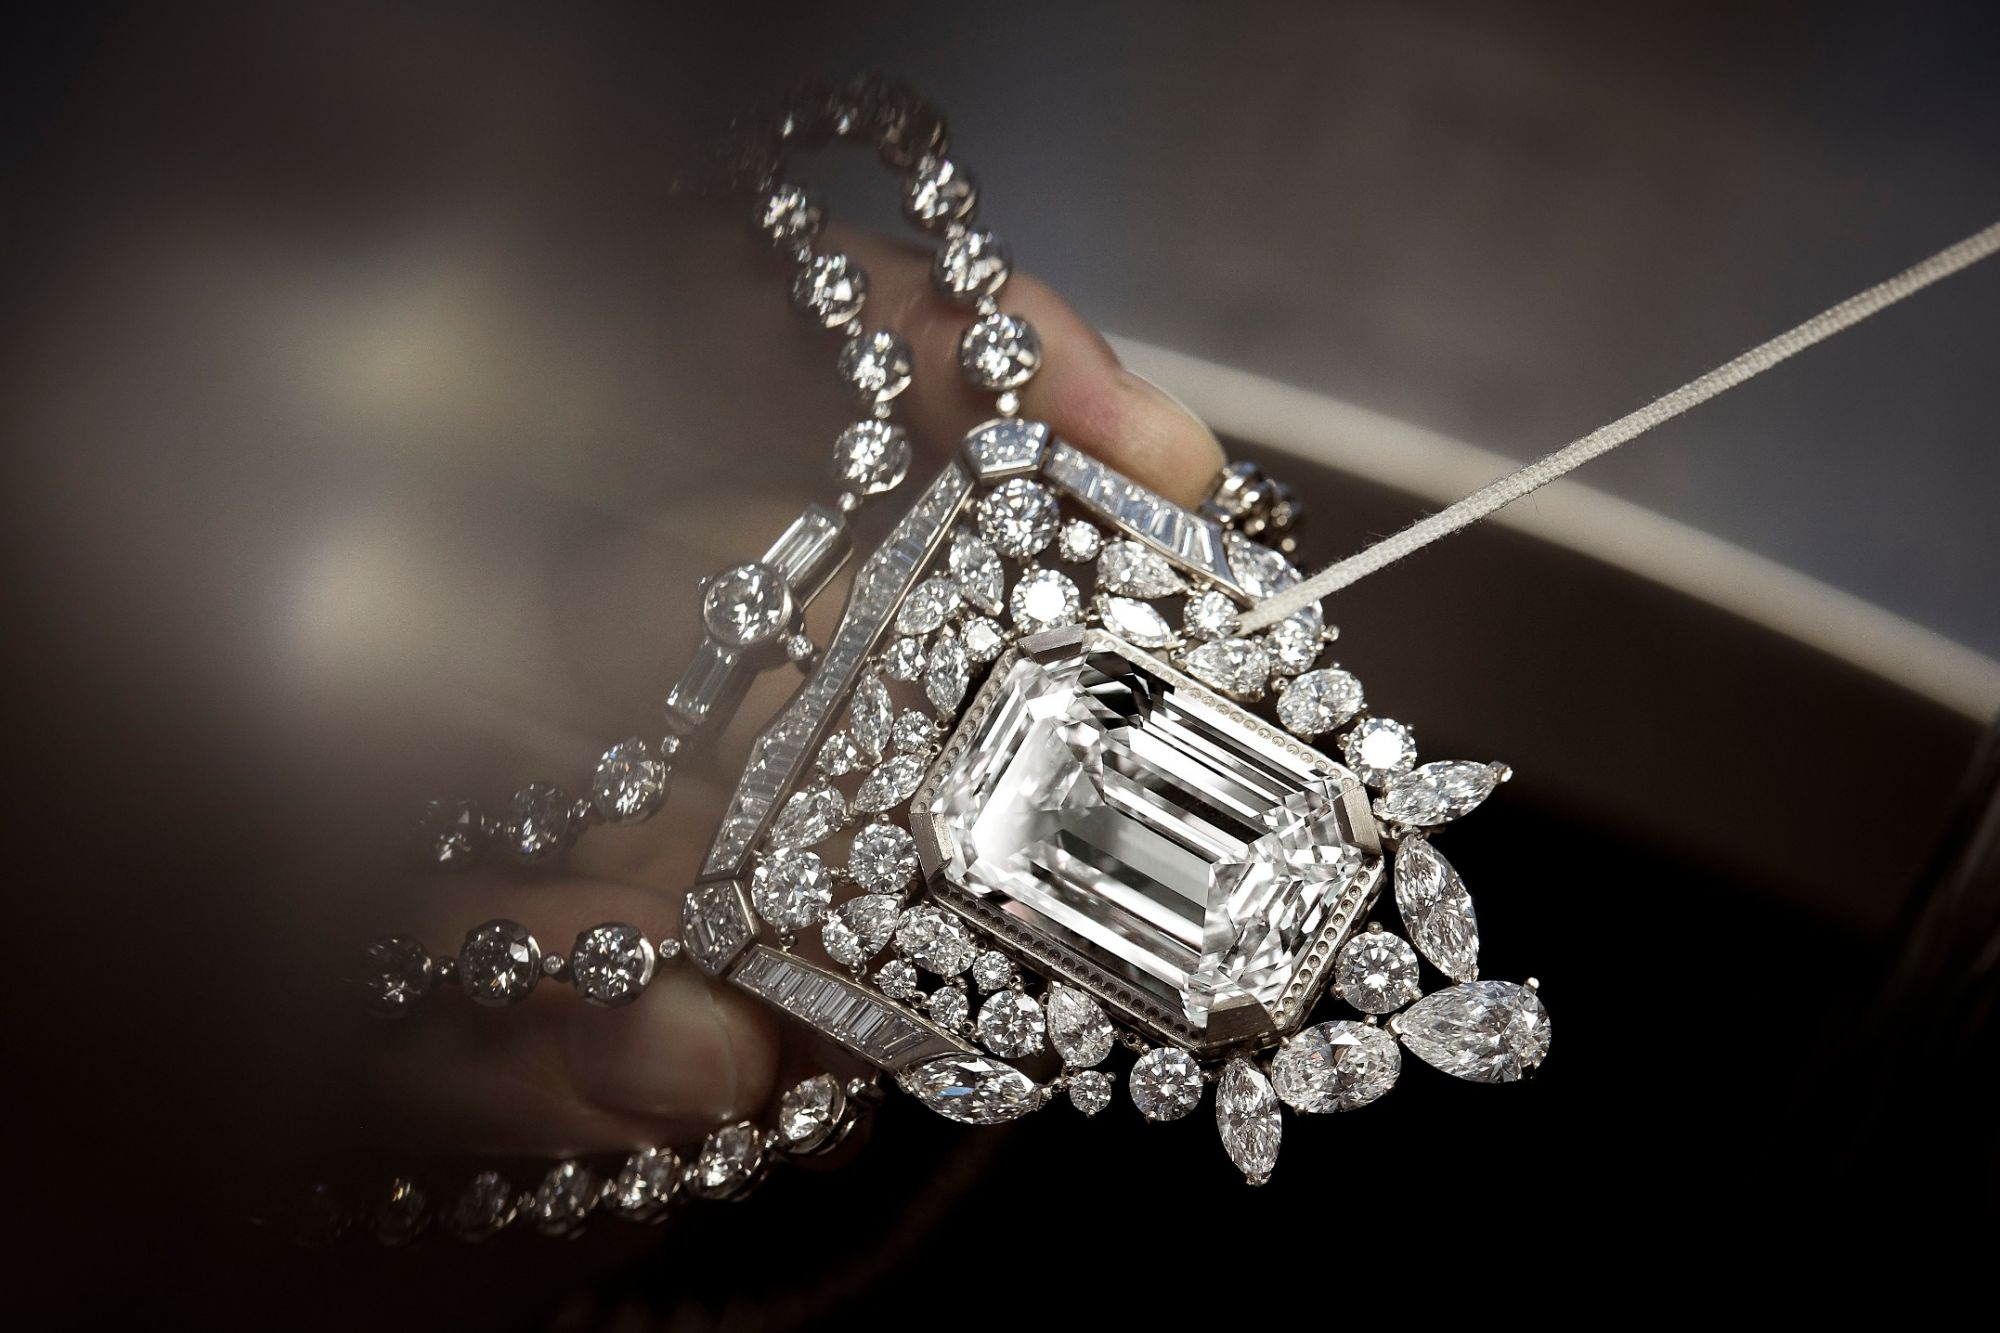 Chanel Pays Homage To N°5 Perfume With A 55.55-Carat Diamond Necklace